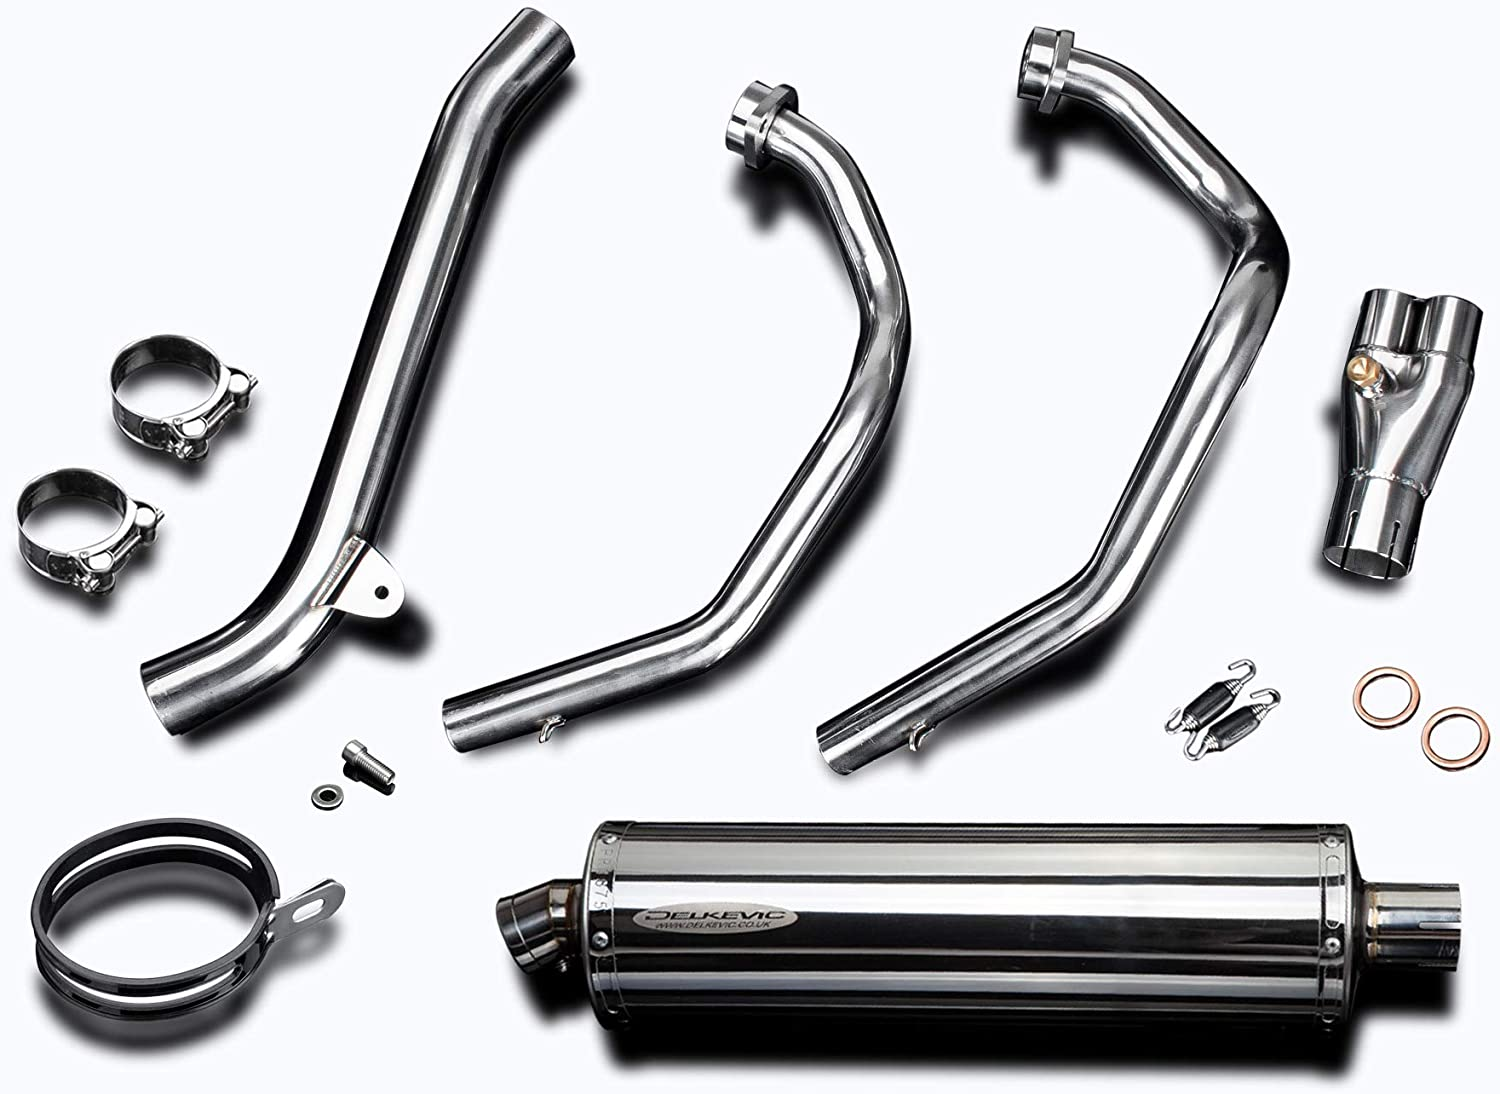 Delkevic Full 2-1 compatible with Honda CRF1000L Africa Twin 18 Stainless Steel Oval Muffler Exhaust 16-19